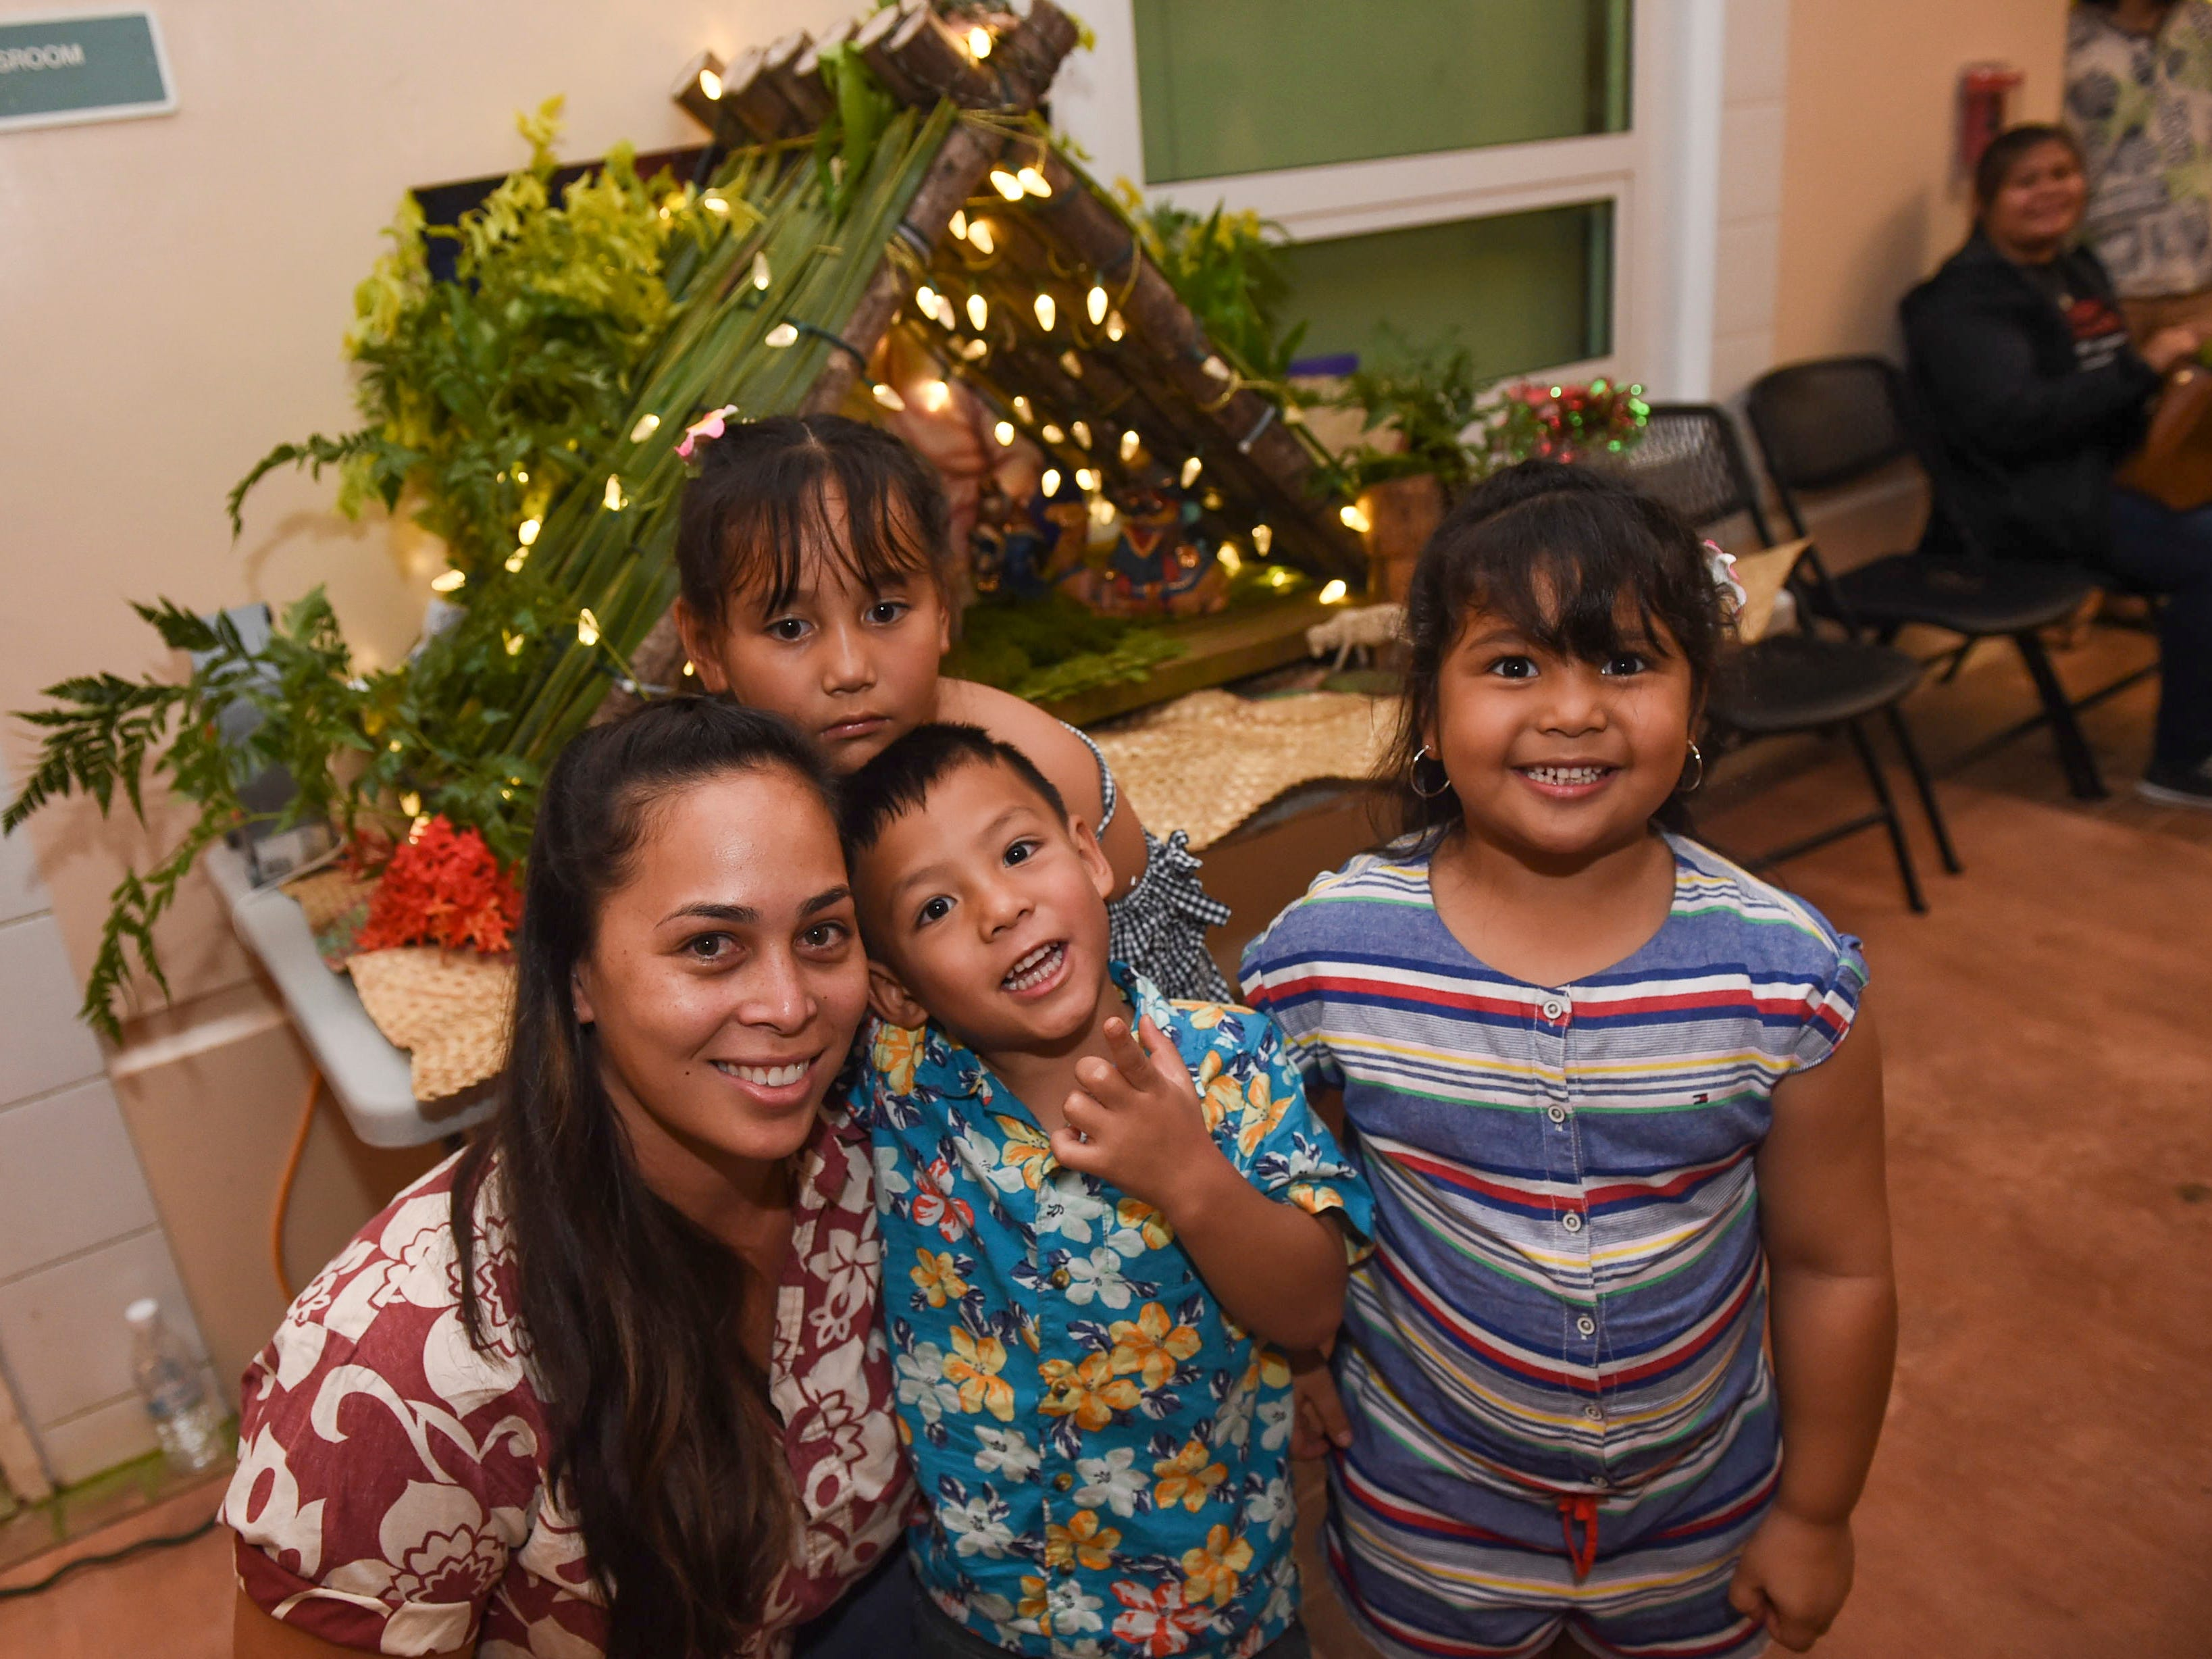 Airian Diaz, left, with her kids Aleeah, 7, top, Aycen, 4, center, and Araiah, 5, during the University of Guam Chamorro Studies Program's 2018 Christmas Celebration, Puengen Minagof Noche Buena! at the UOG Humanities and Social Sciences Building on Nov. 30, 2018.